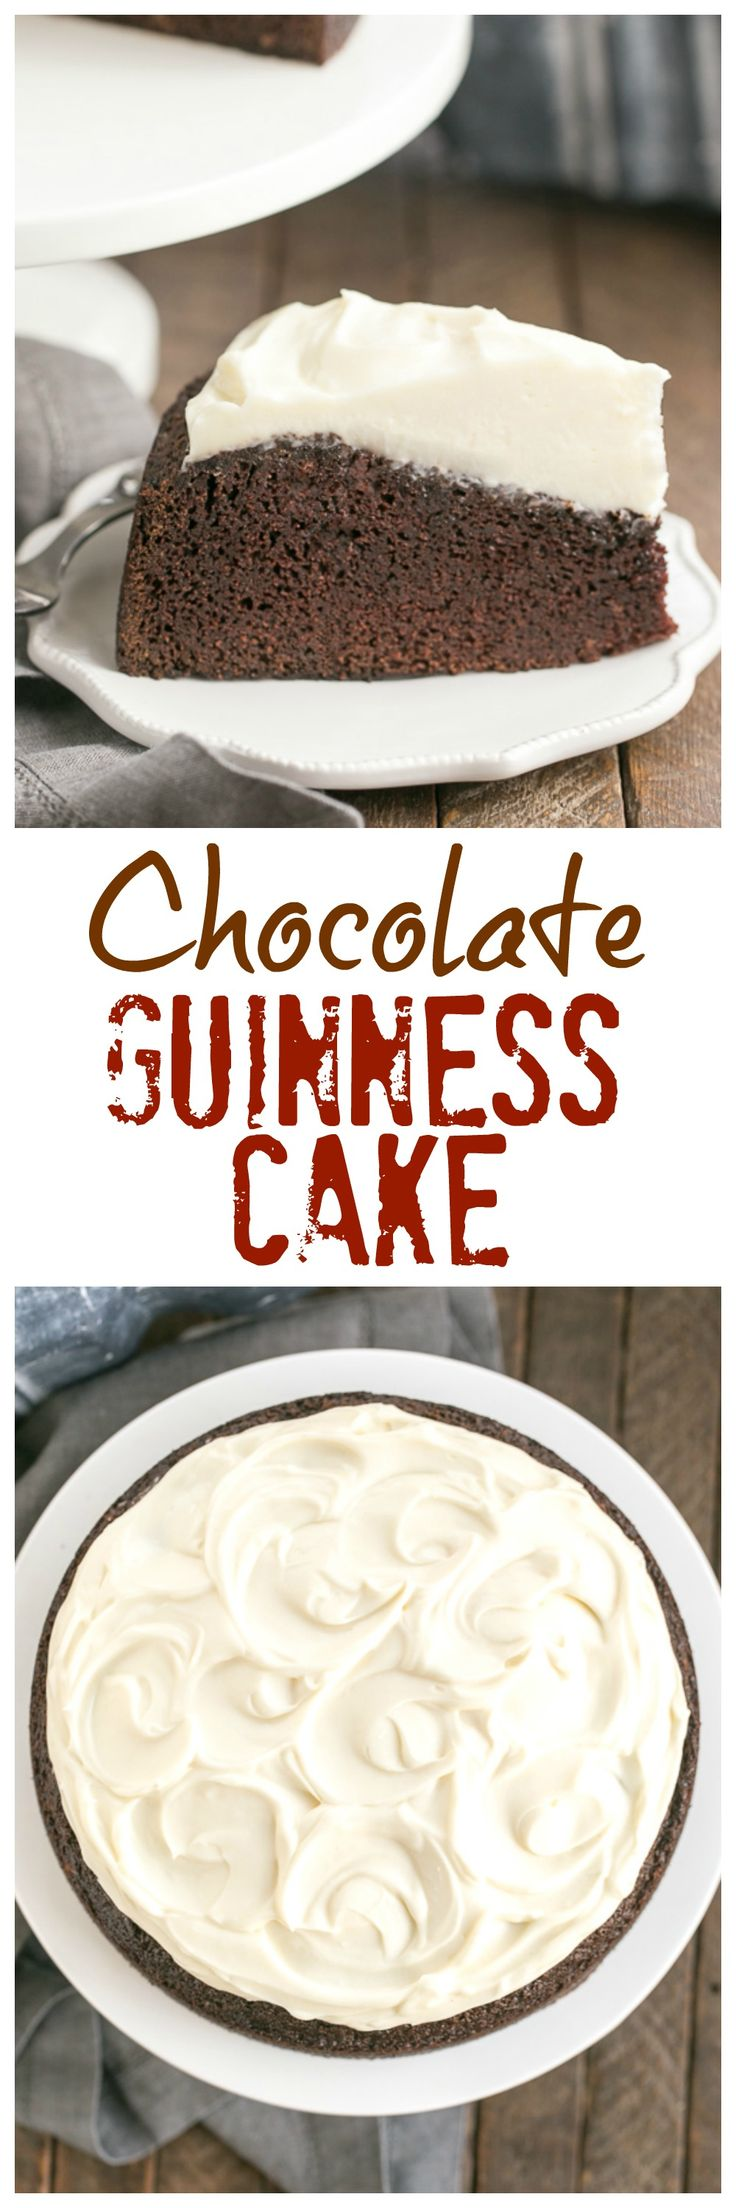 Chocolate Guinness Cake | Rich chocolate one layer cake spiked with Irish brew and topped with cream cheese icing! @lizzydo